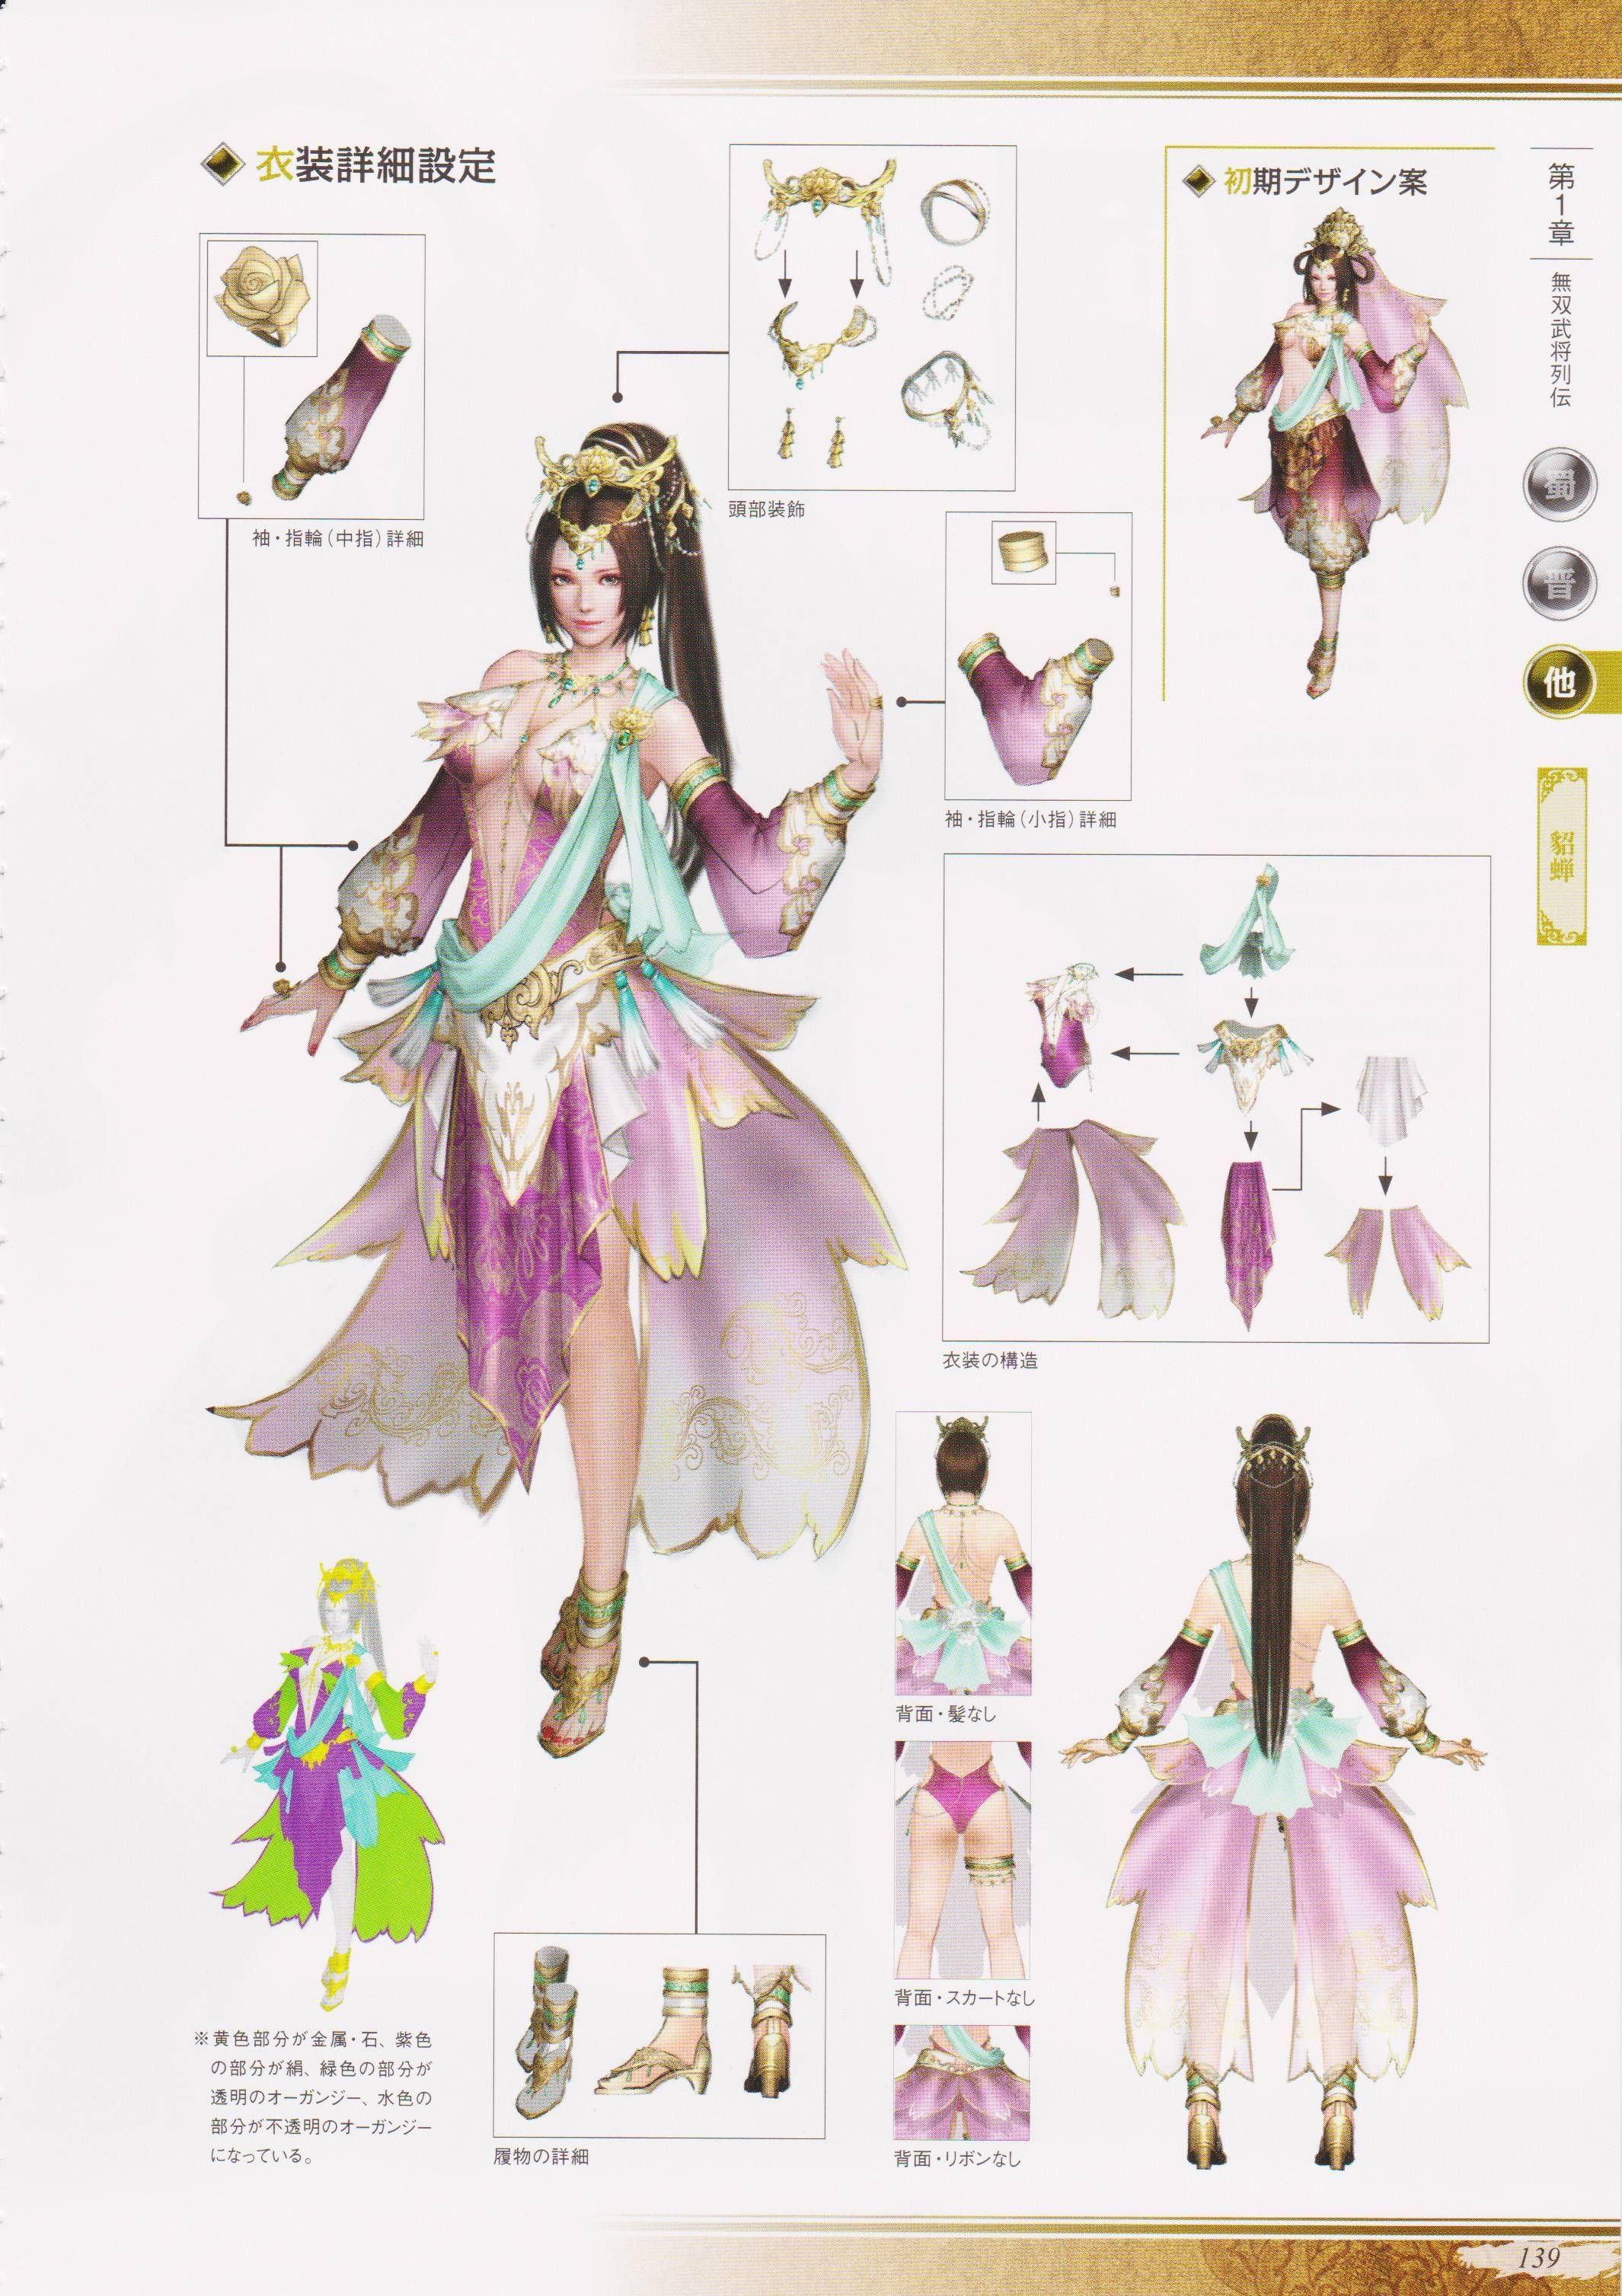 from Rolando dynasty warriors sex pic